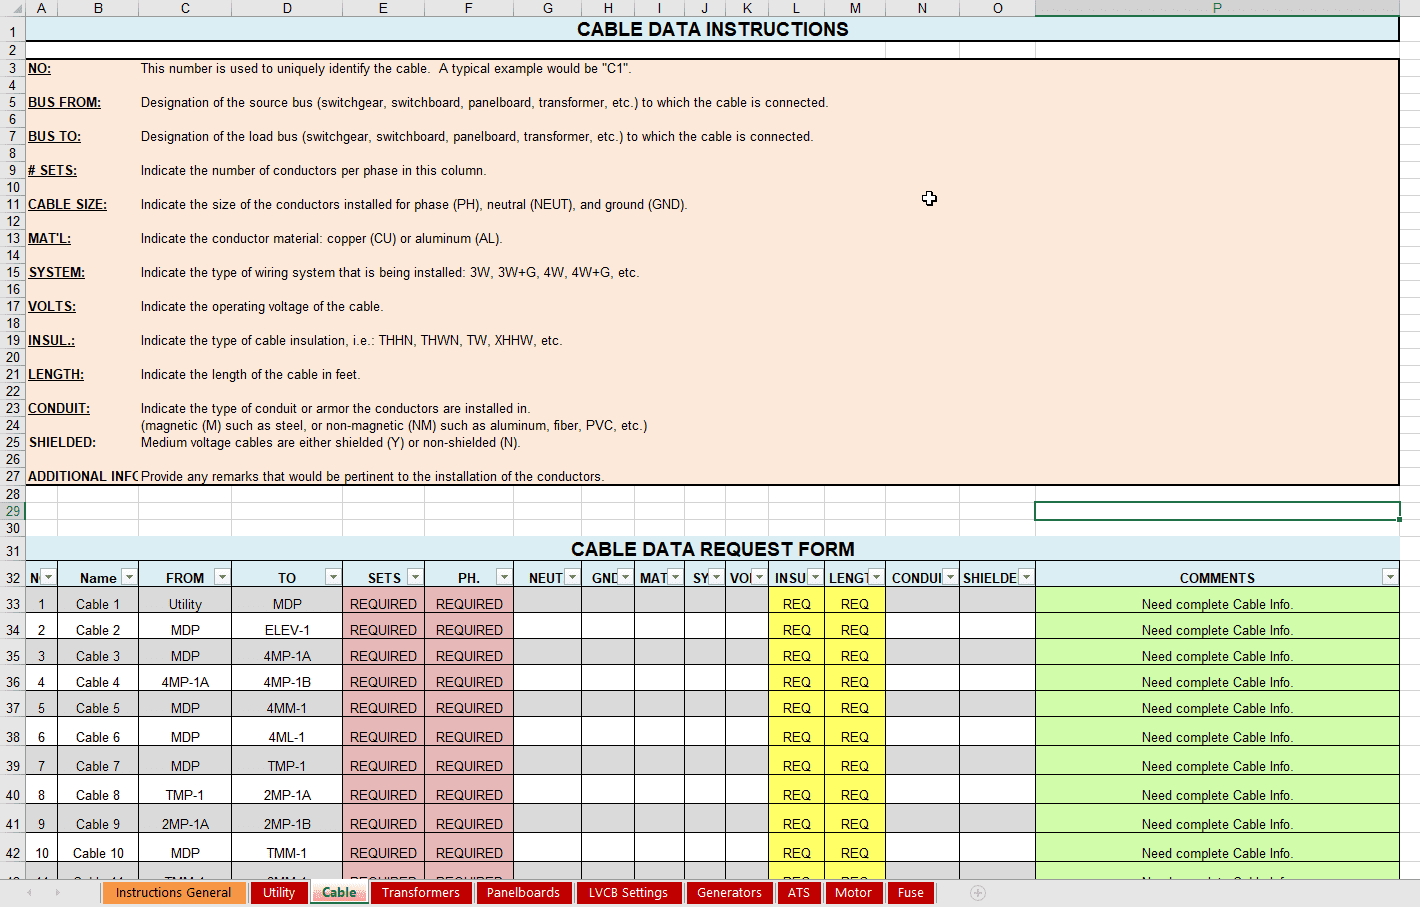 Cable Data Instructions